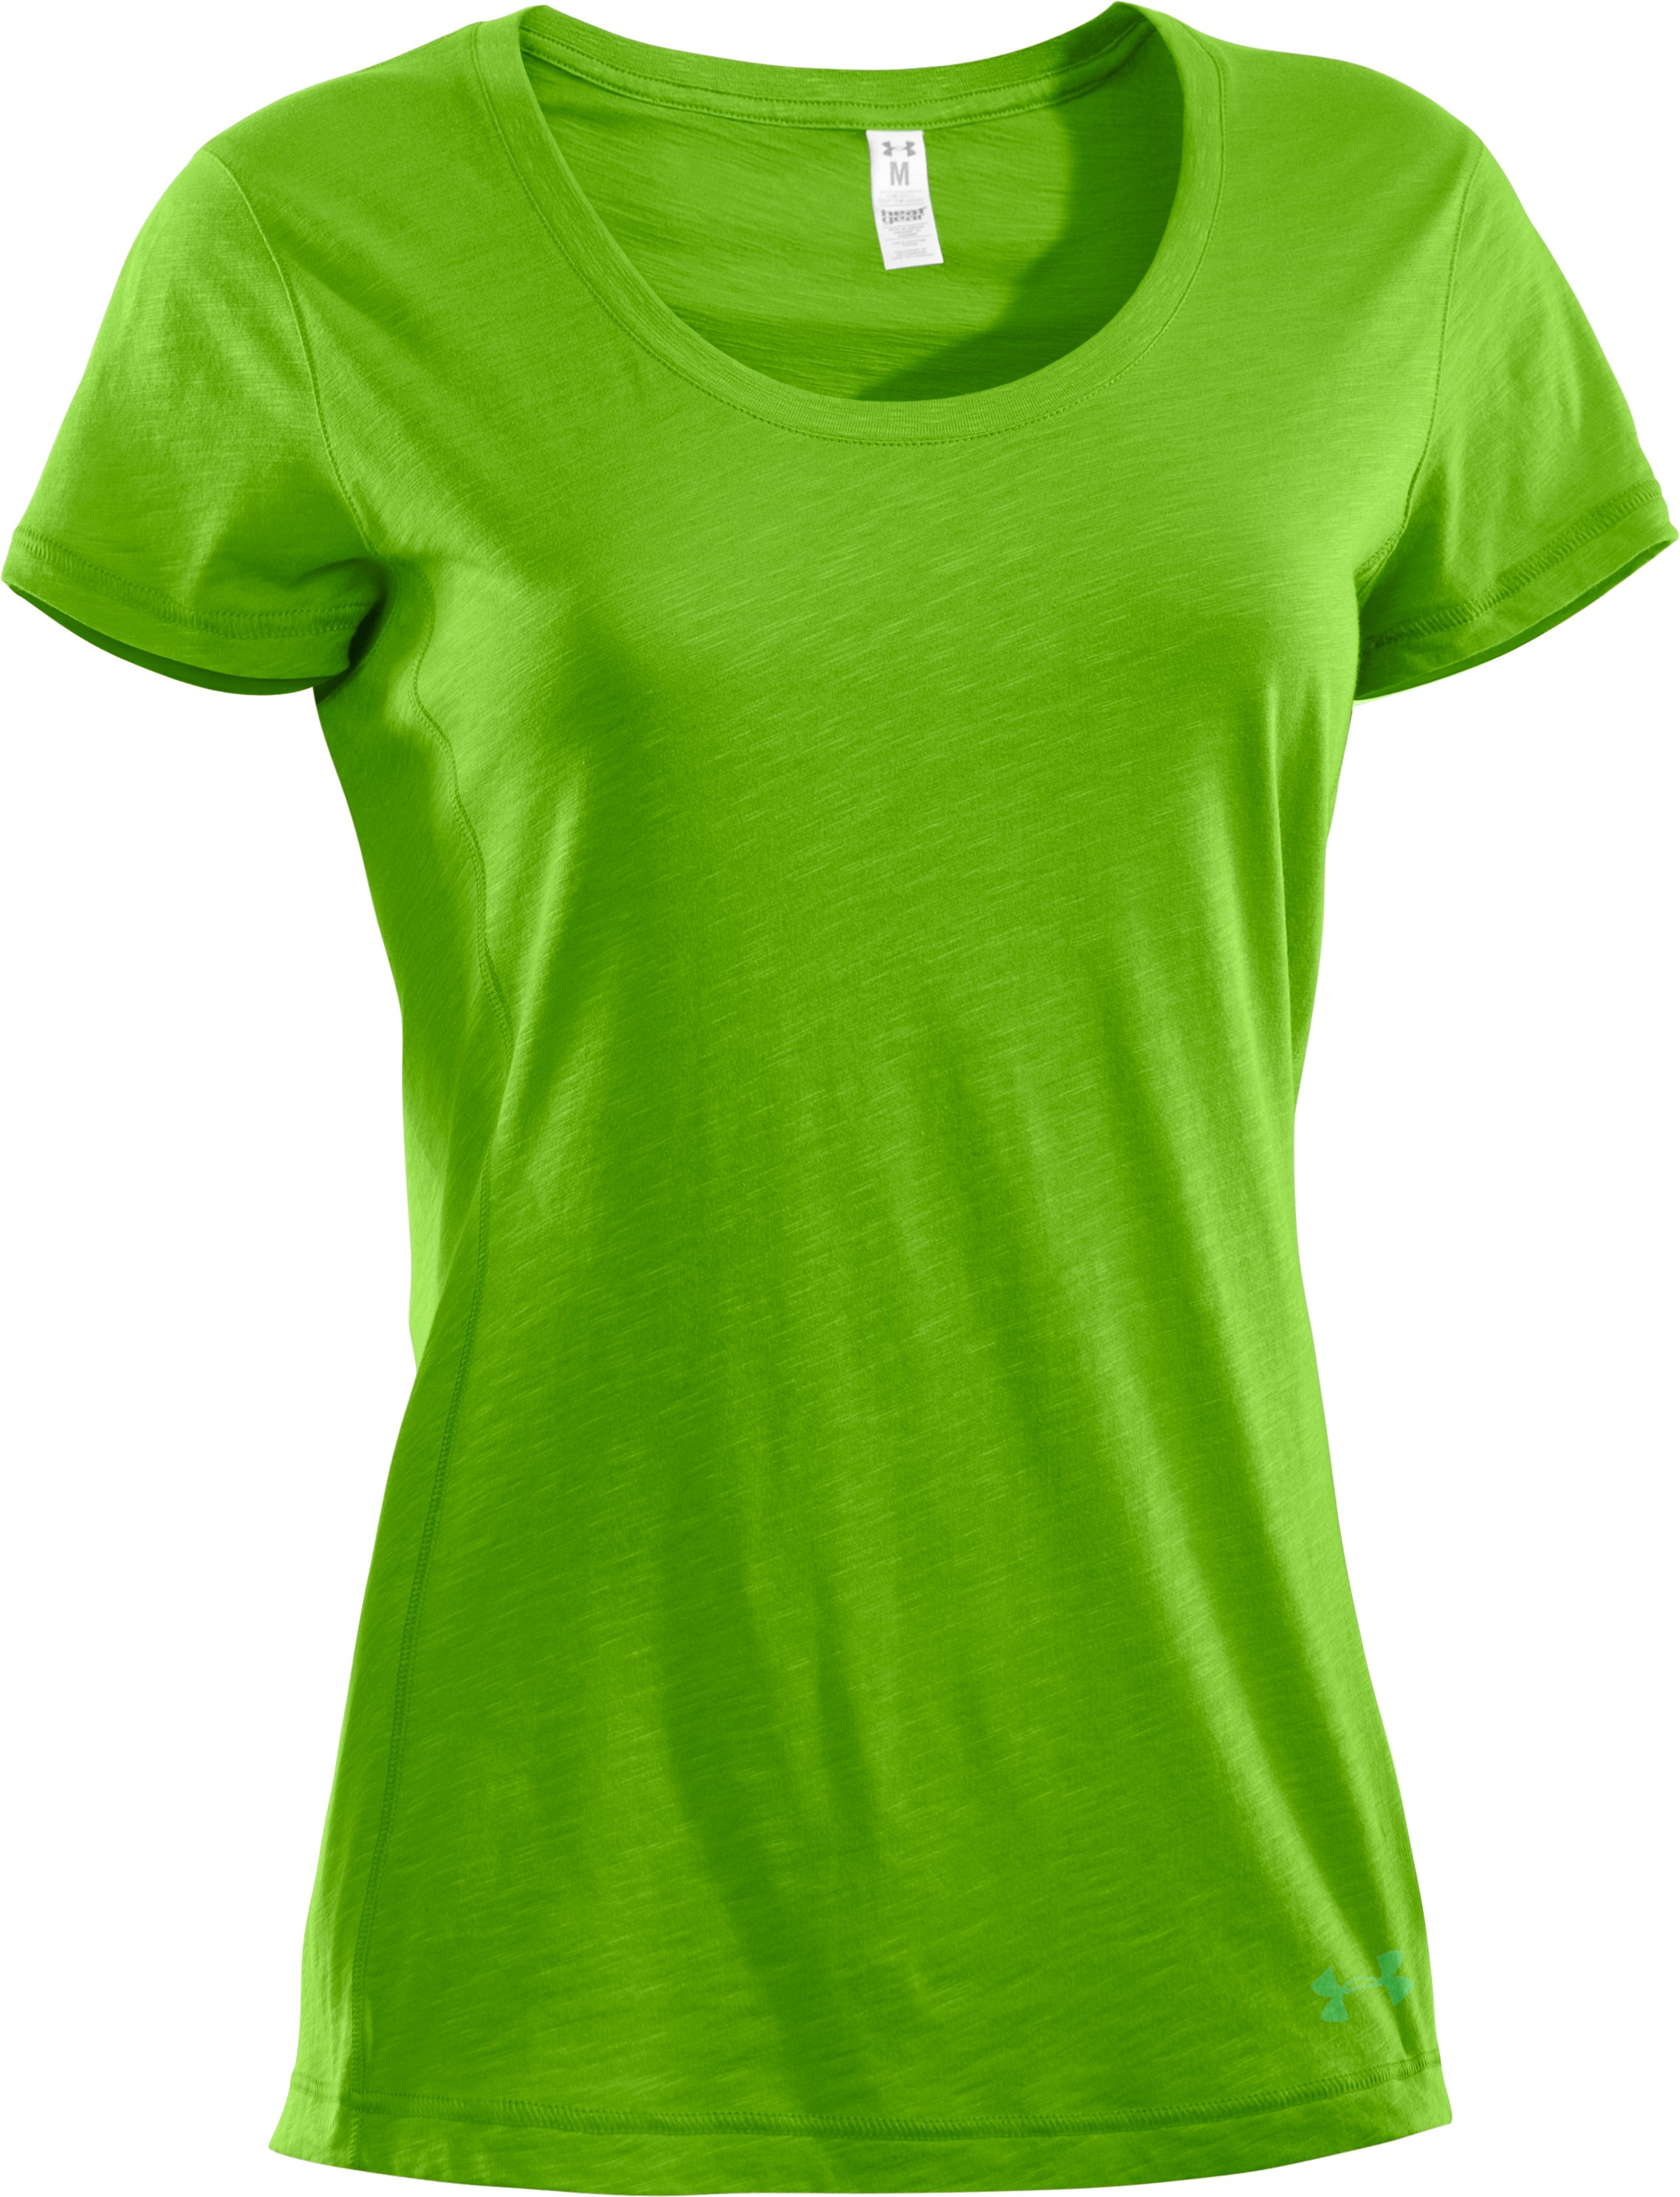 Women's Charged Cotton® Sassy Slub T-Shirt, Poison